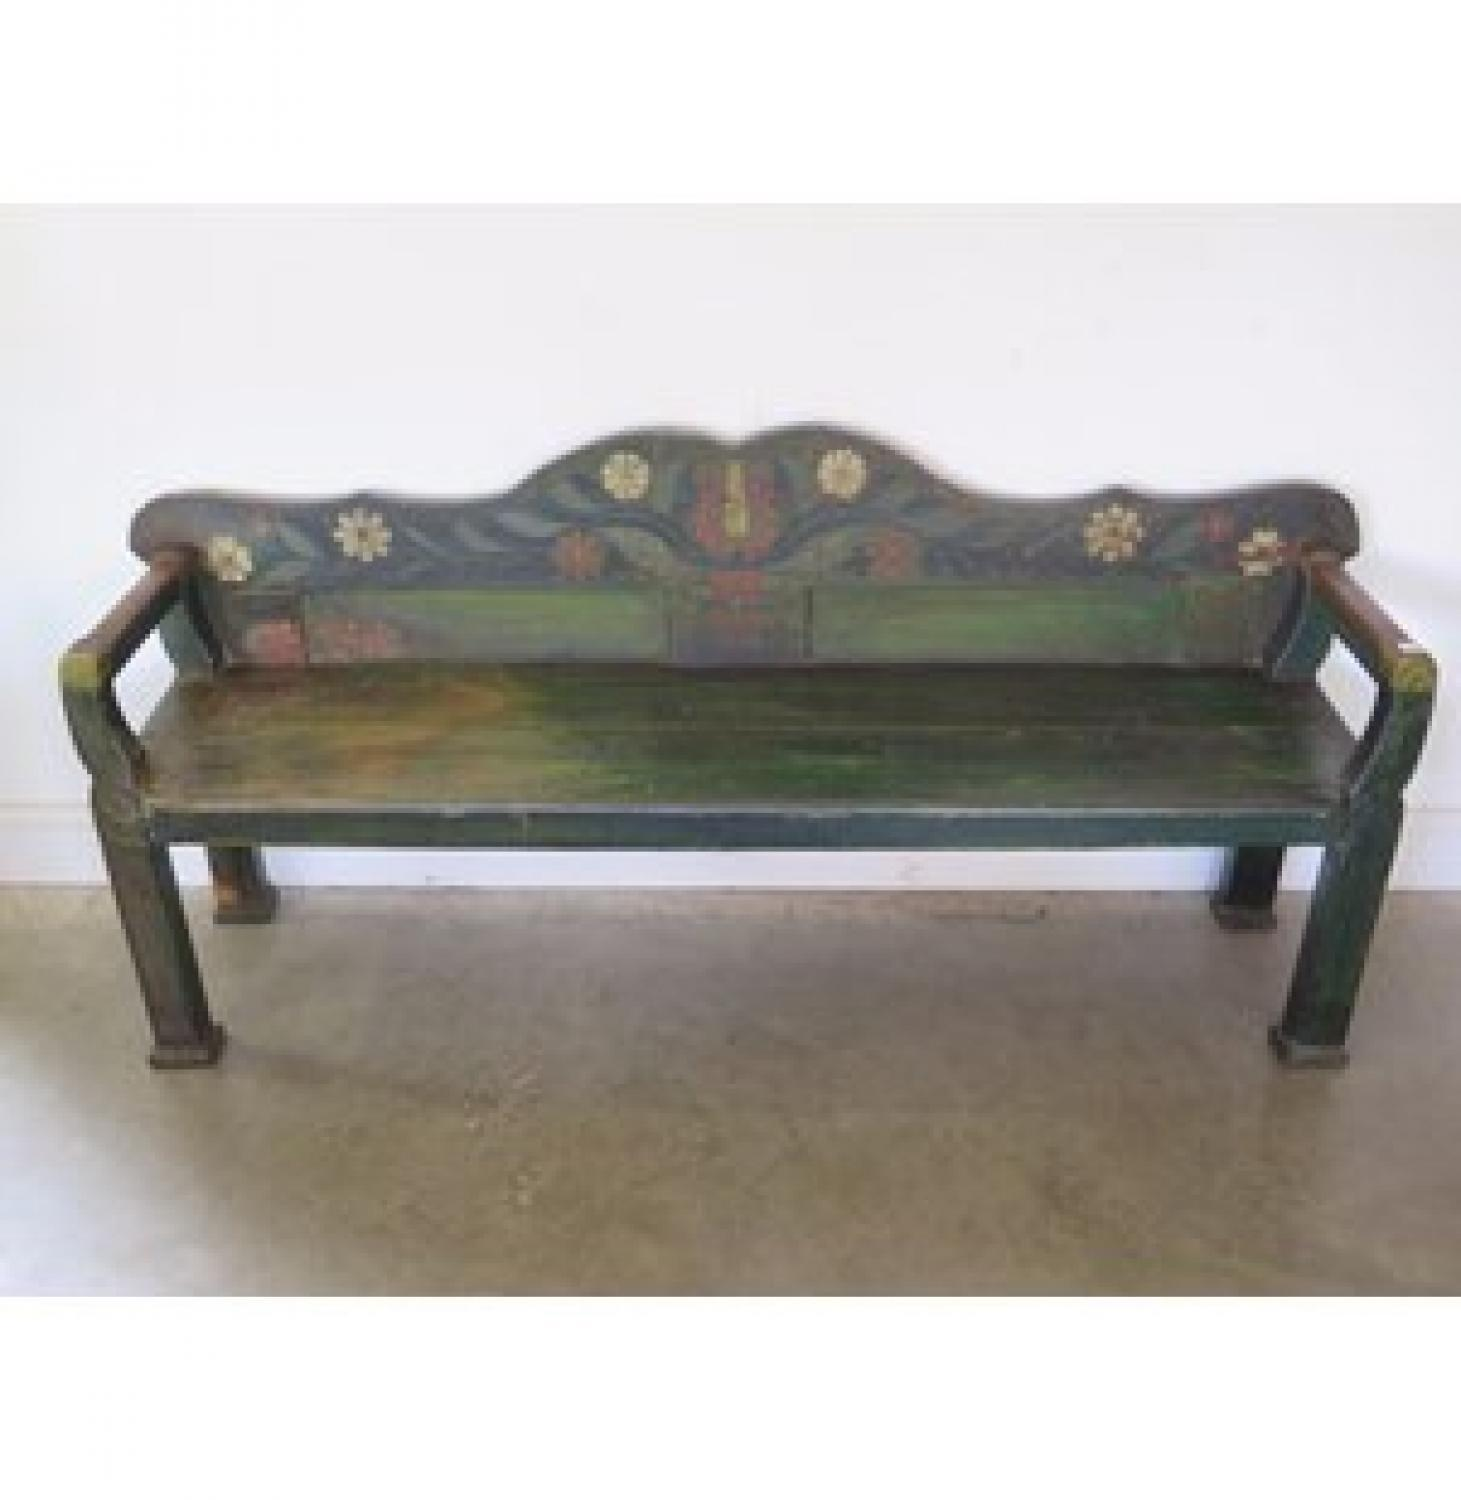 Early 19th Century European Folk Art Bench